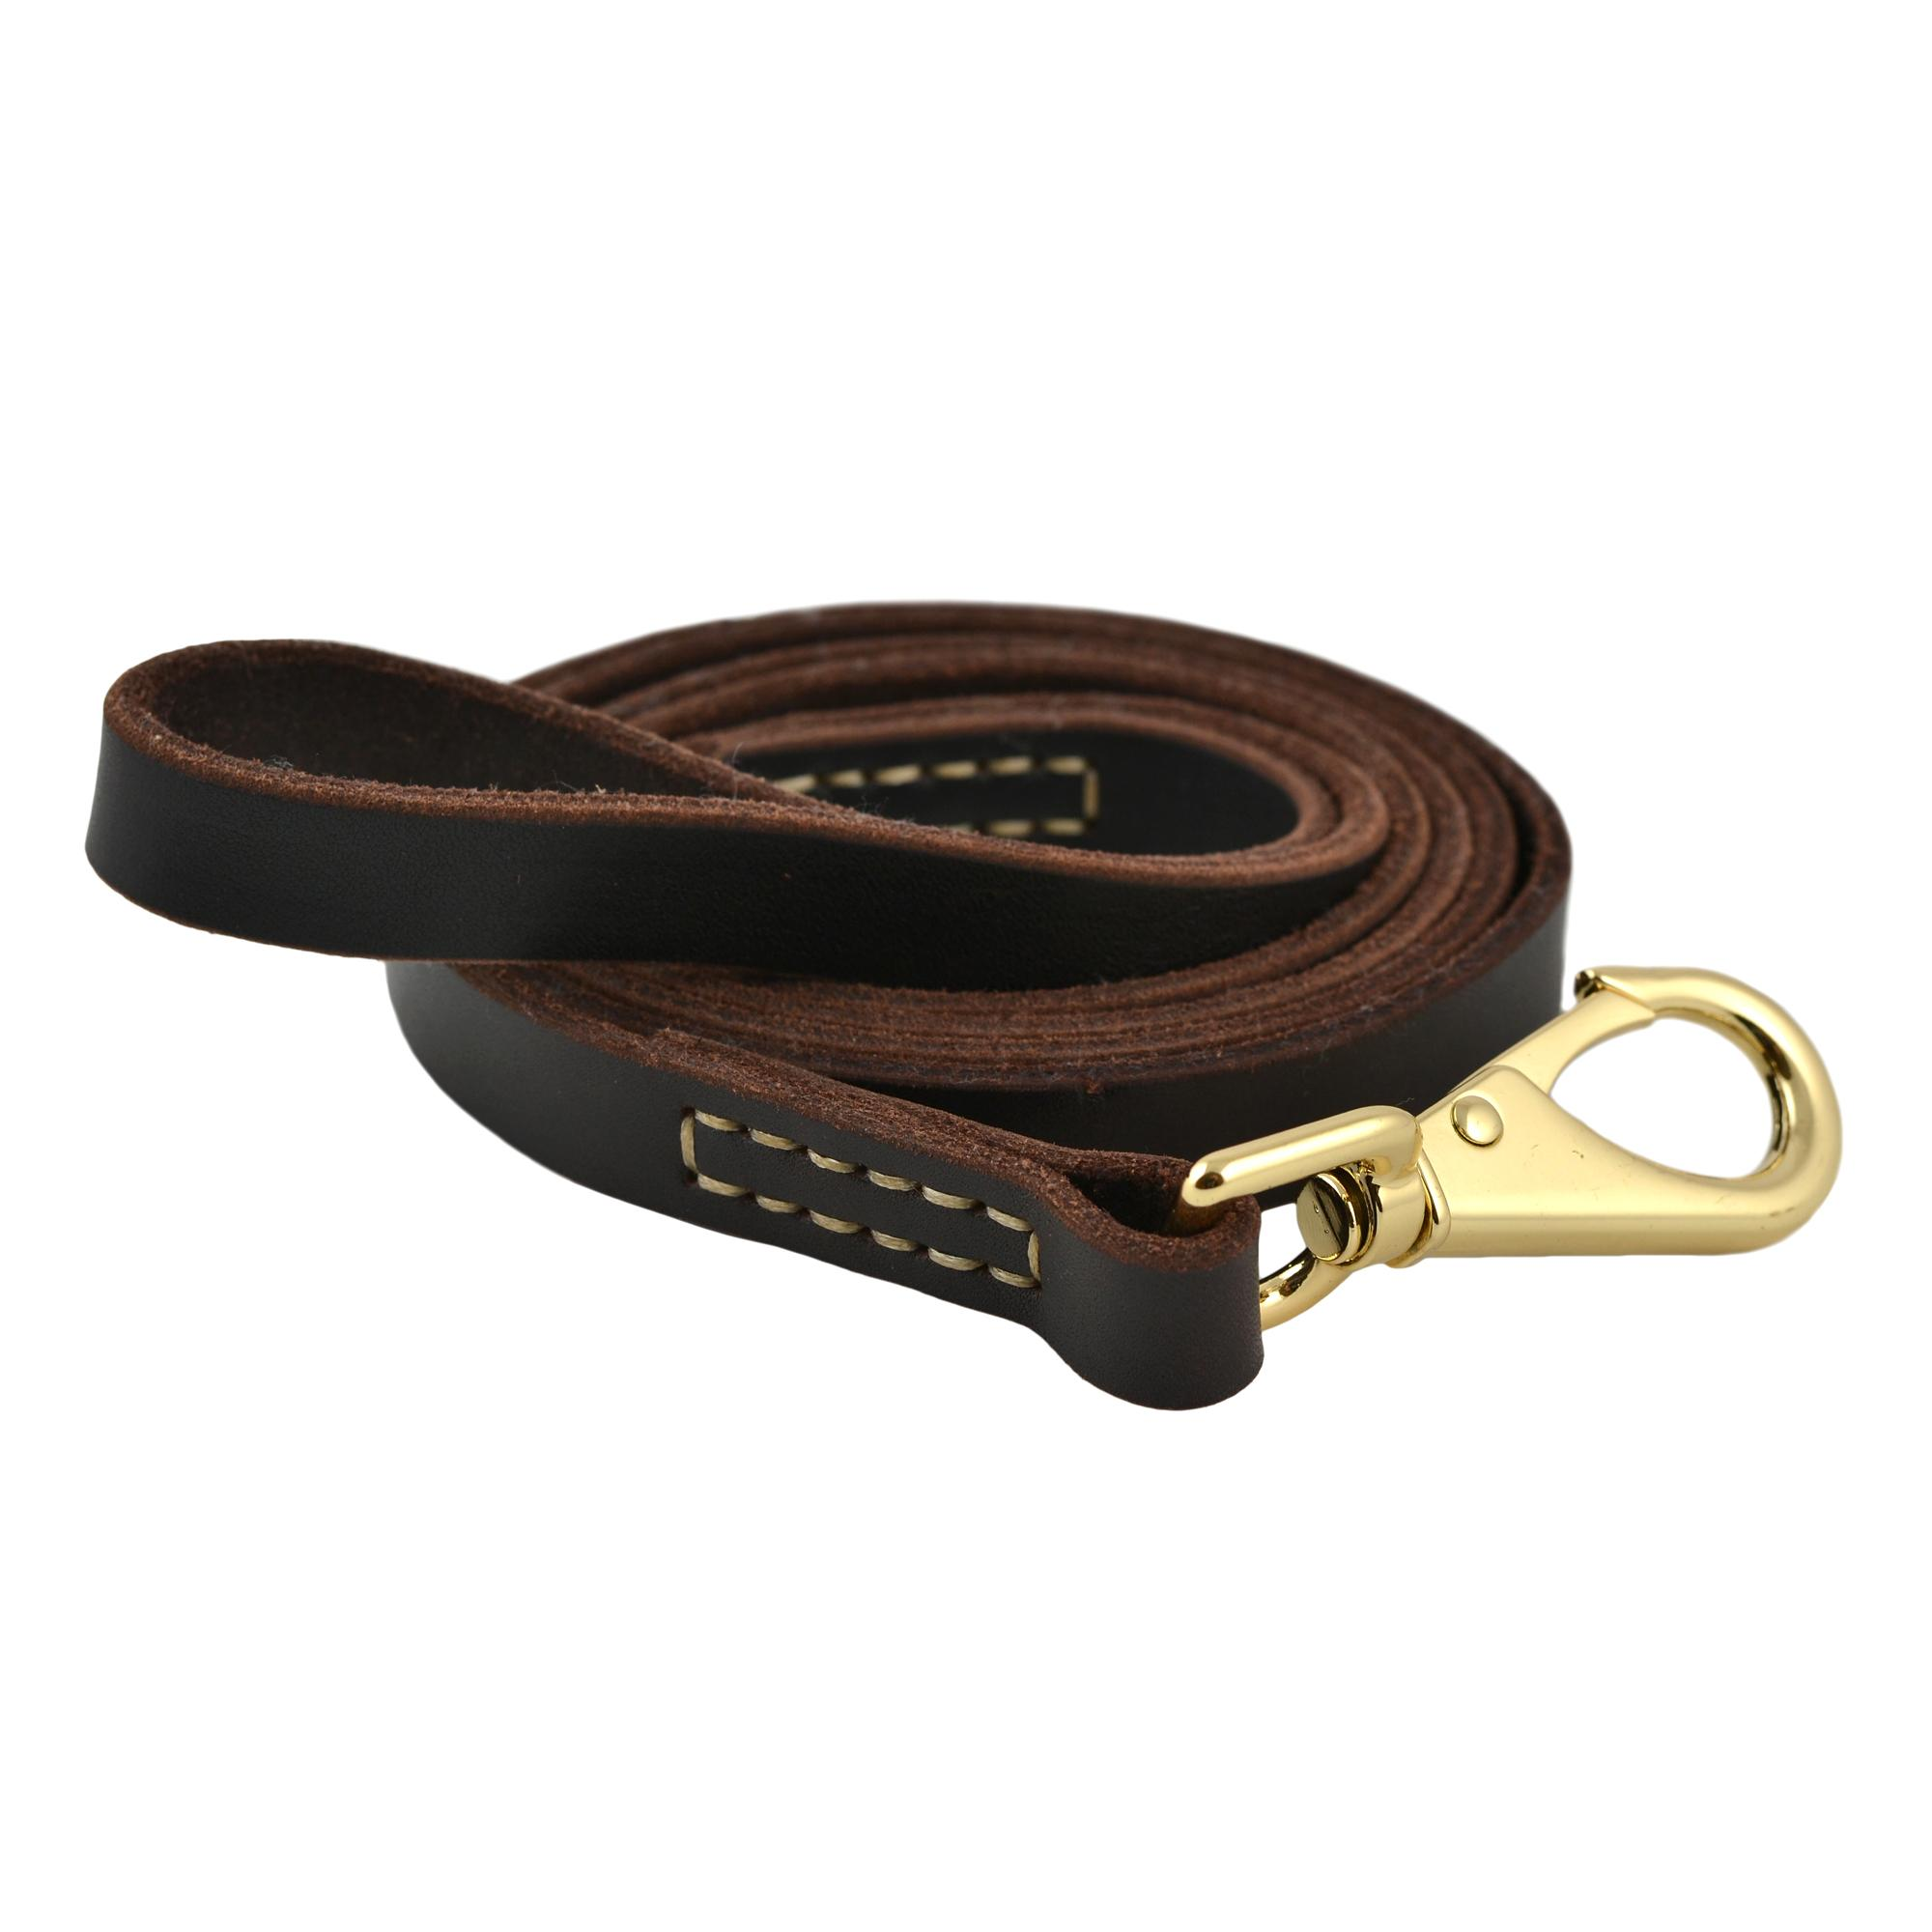 Tall Tails Genuine Leather Dog Leash, Large